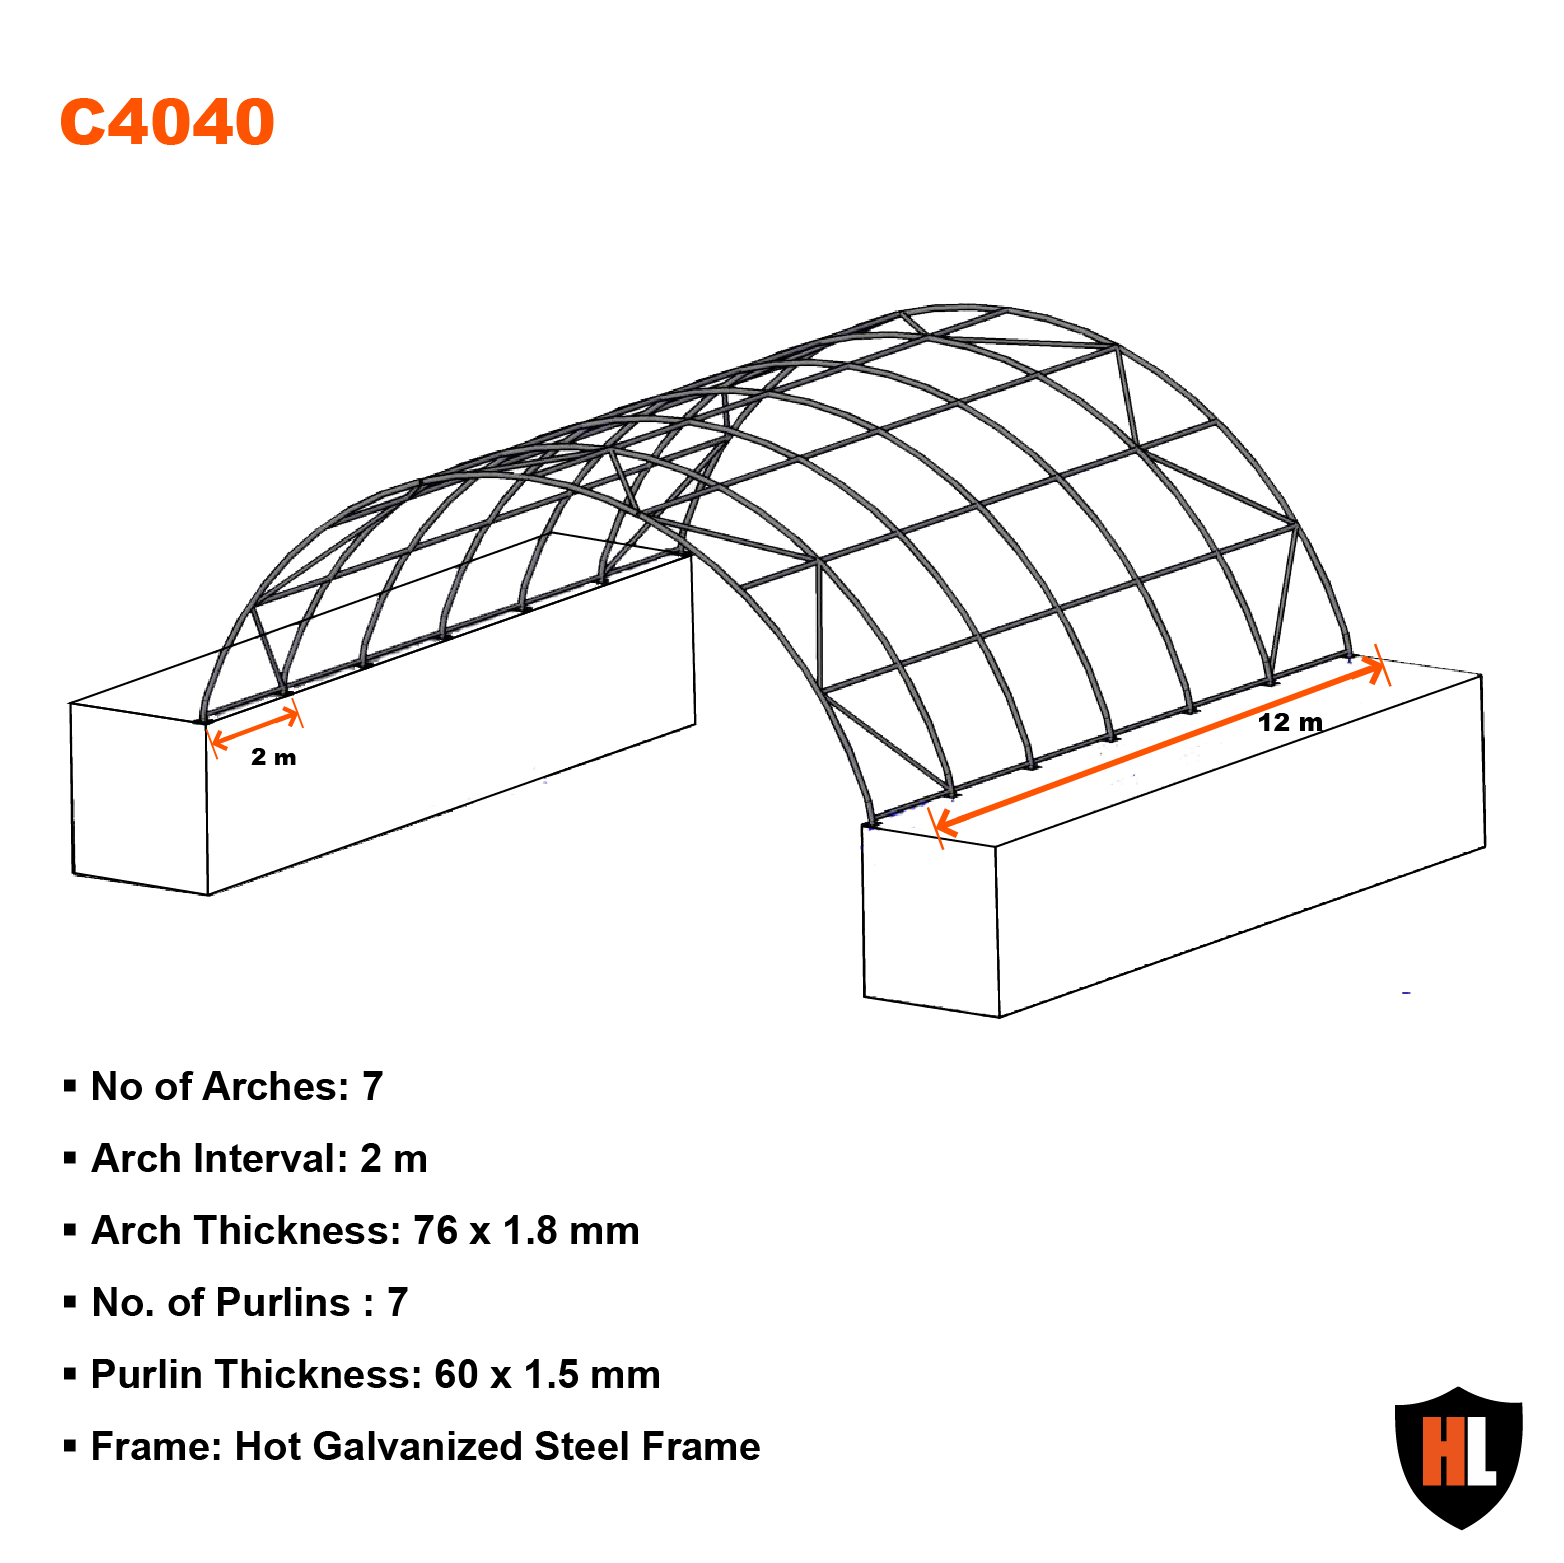 40 x 40 FT SHIPPING CONTAINER CANOPY / SHELTER, SHED - GALVANISED STEEL FRAME 3